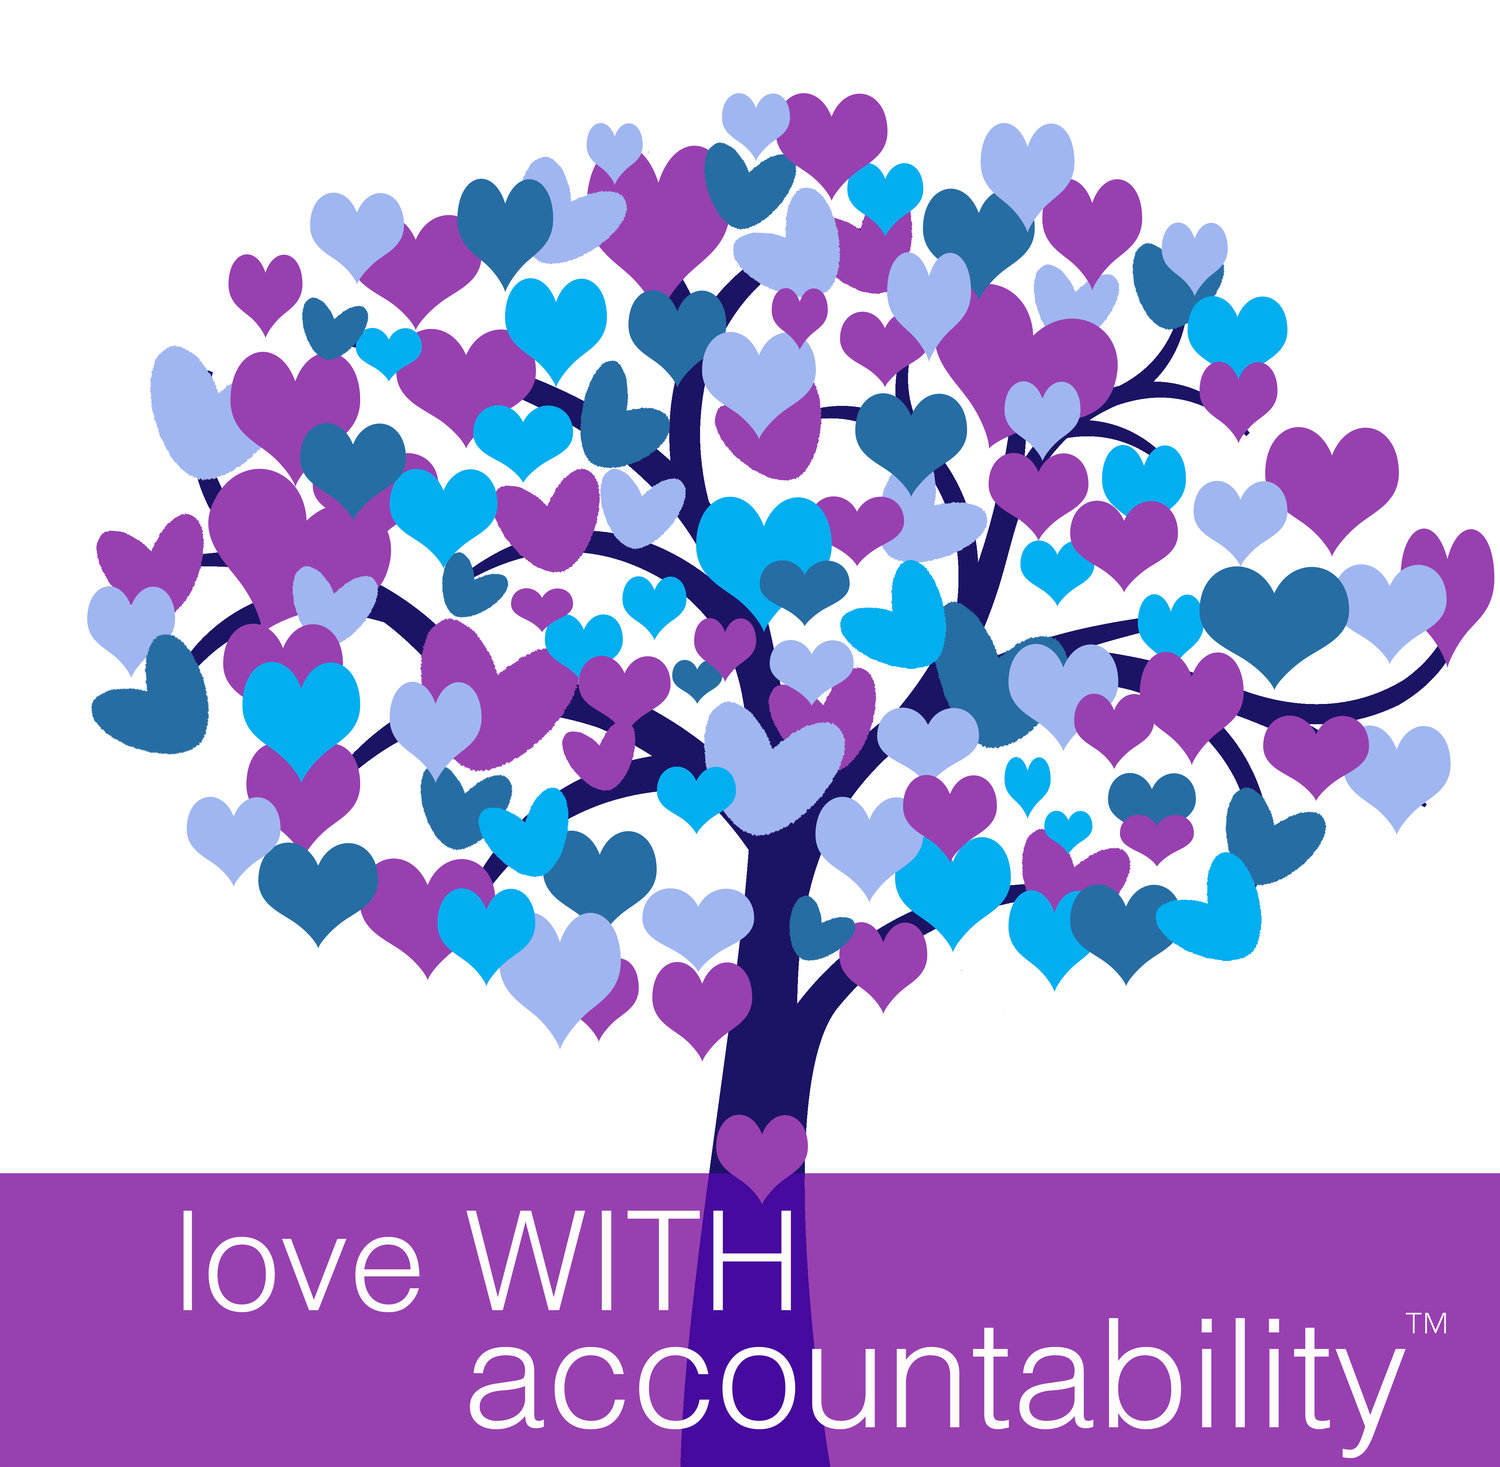 sexual violence — #LoveWITHAccountability FORUM